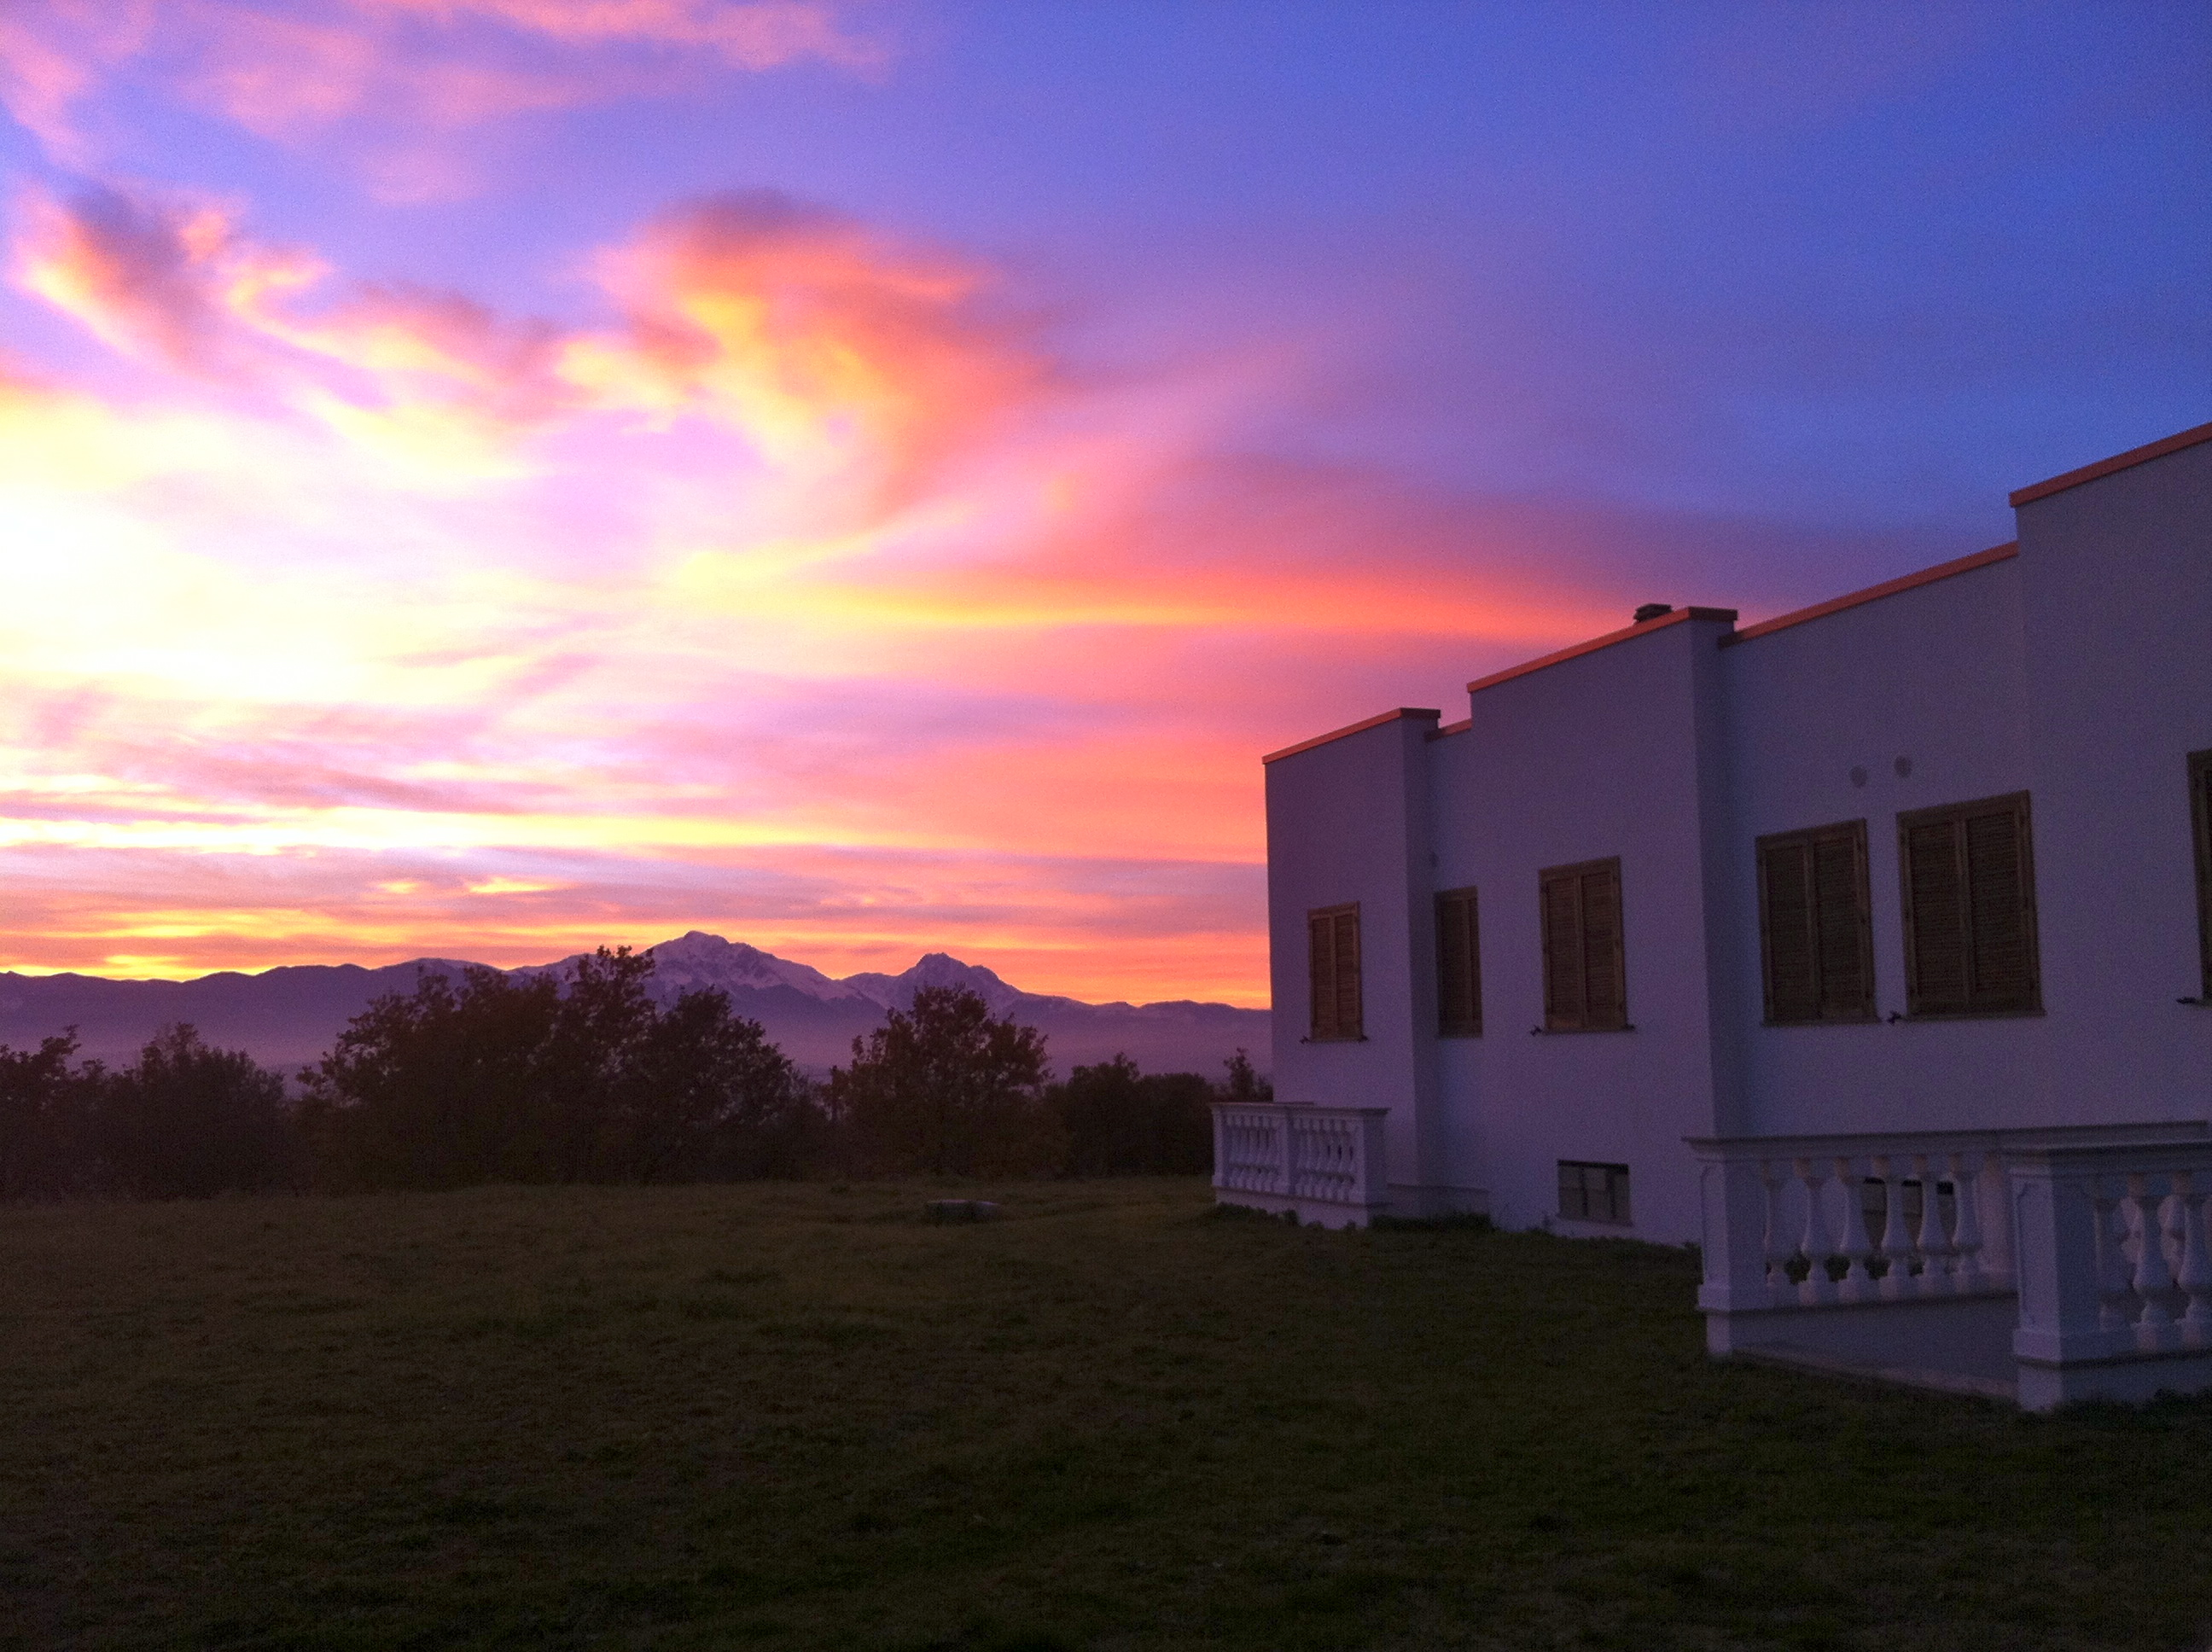 abruzzo villas - photo#27